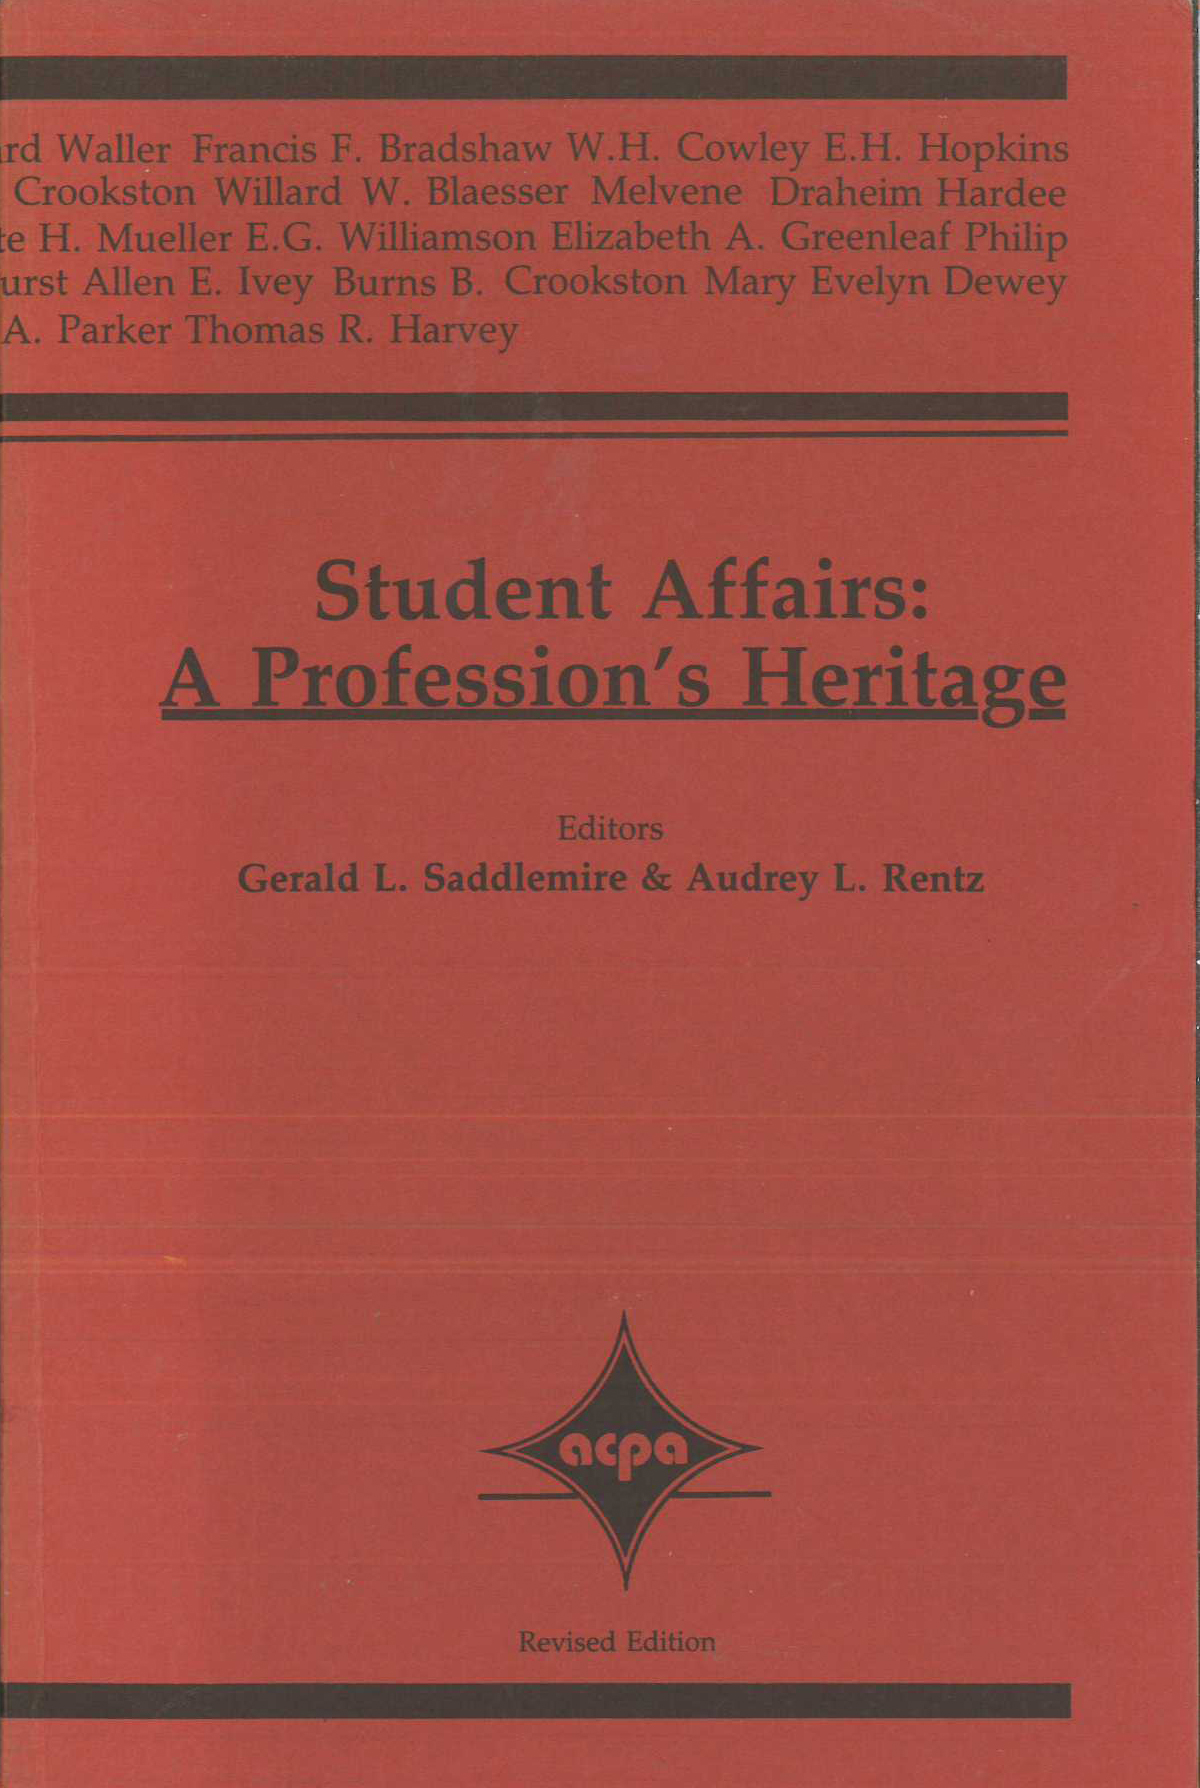 Student Affairs: A Profession's Heritage (revised edition)